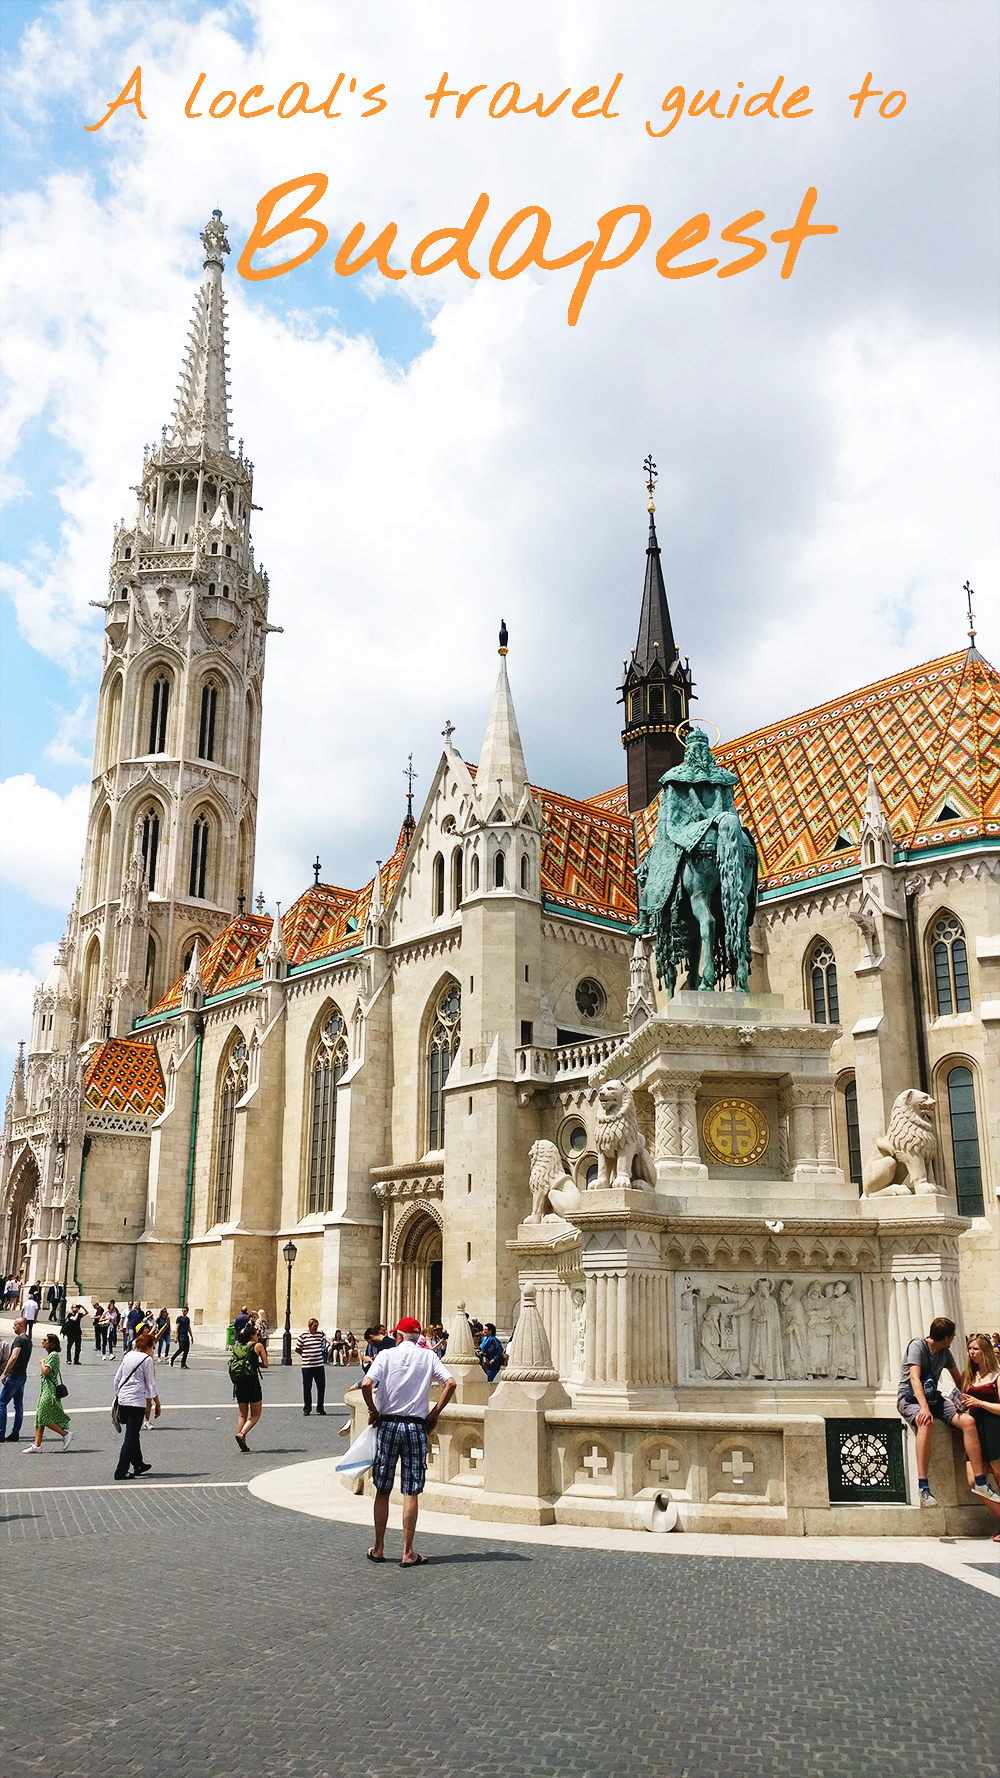 Castle District with the Matthias Church - A local's travel guide to Budapest, Hungary - How to get to Budapest? Where to stay? What to do? Where to eat? | Aliz's Wonderland #Budapest #travelguide #Budapestguide